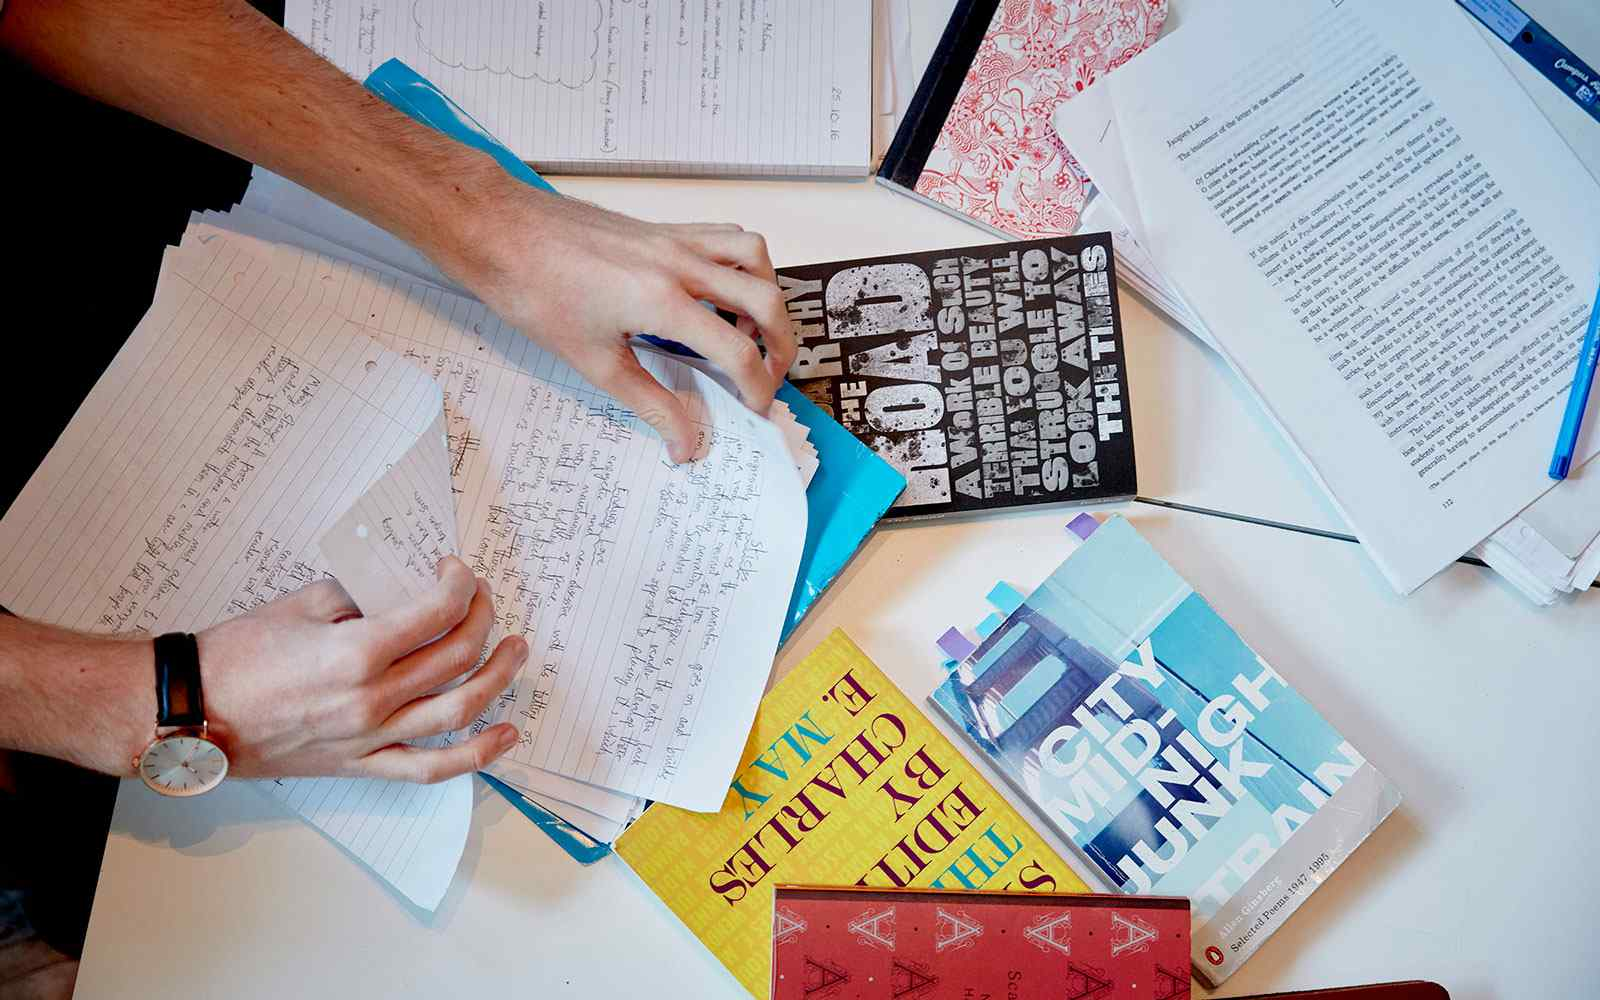 Collection of study notes on a table